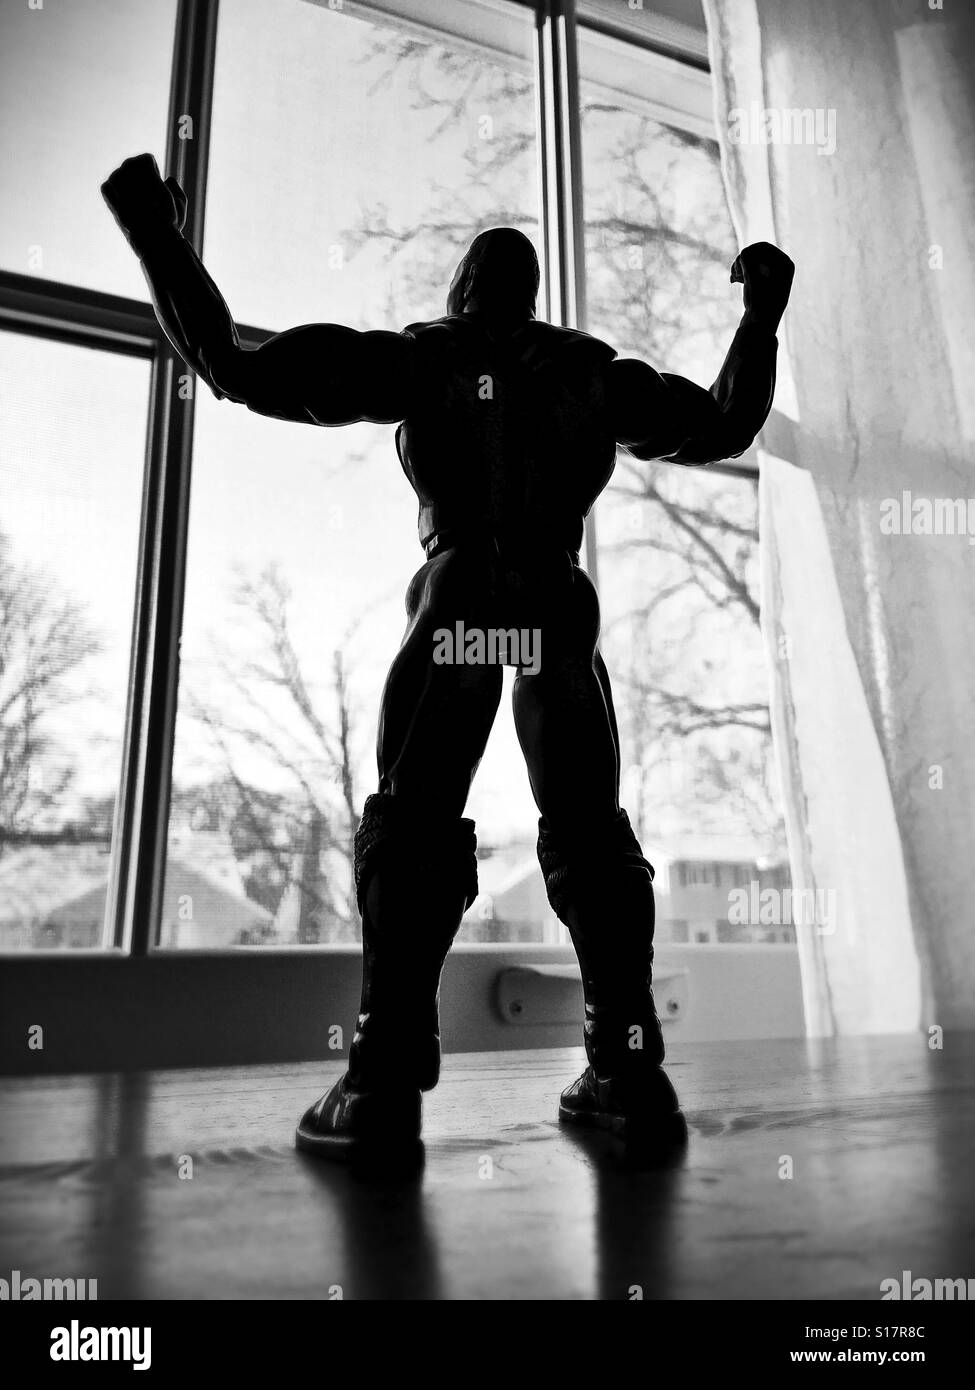 A muscled male action figure posed as if looking out a window with arms raised in victory. - Stock Image